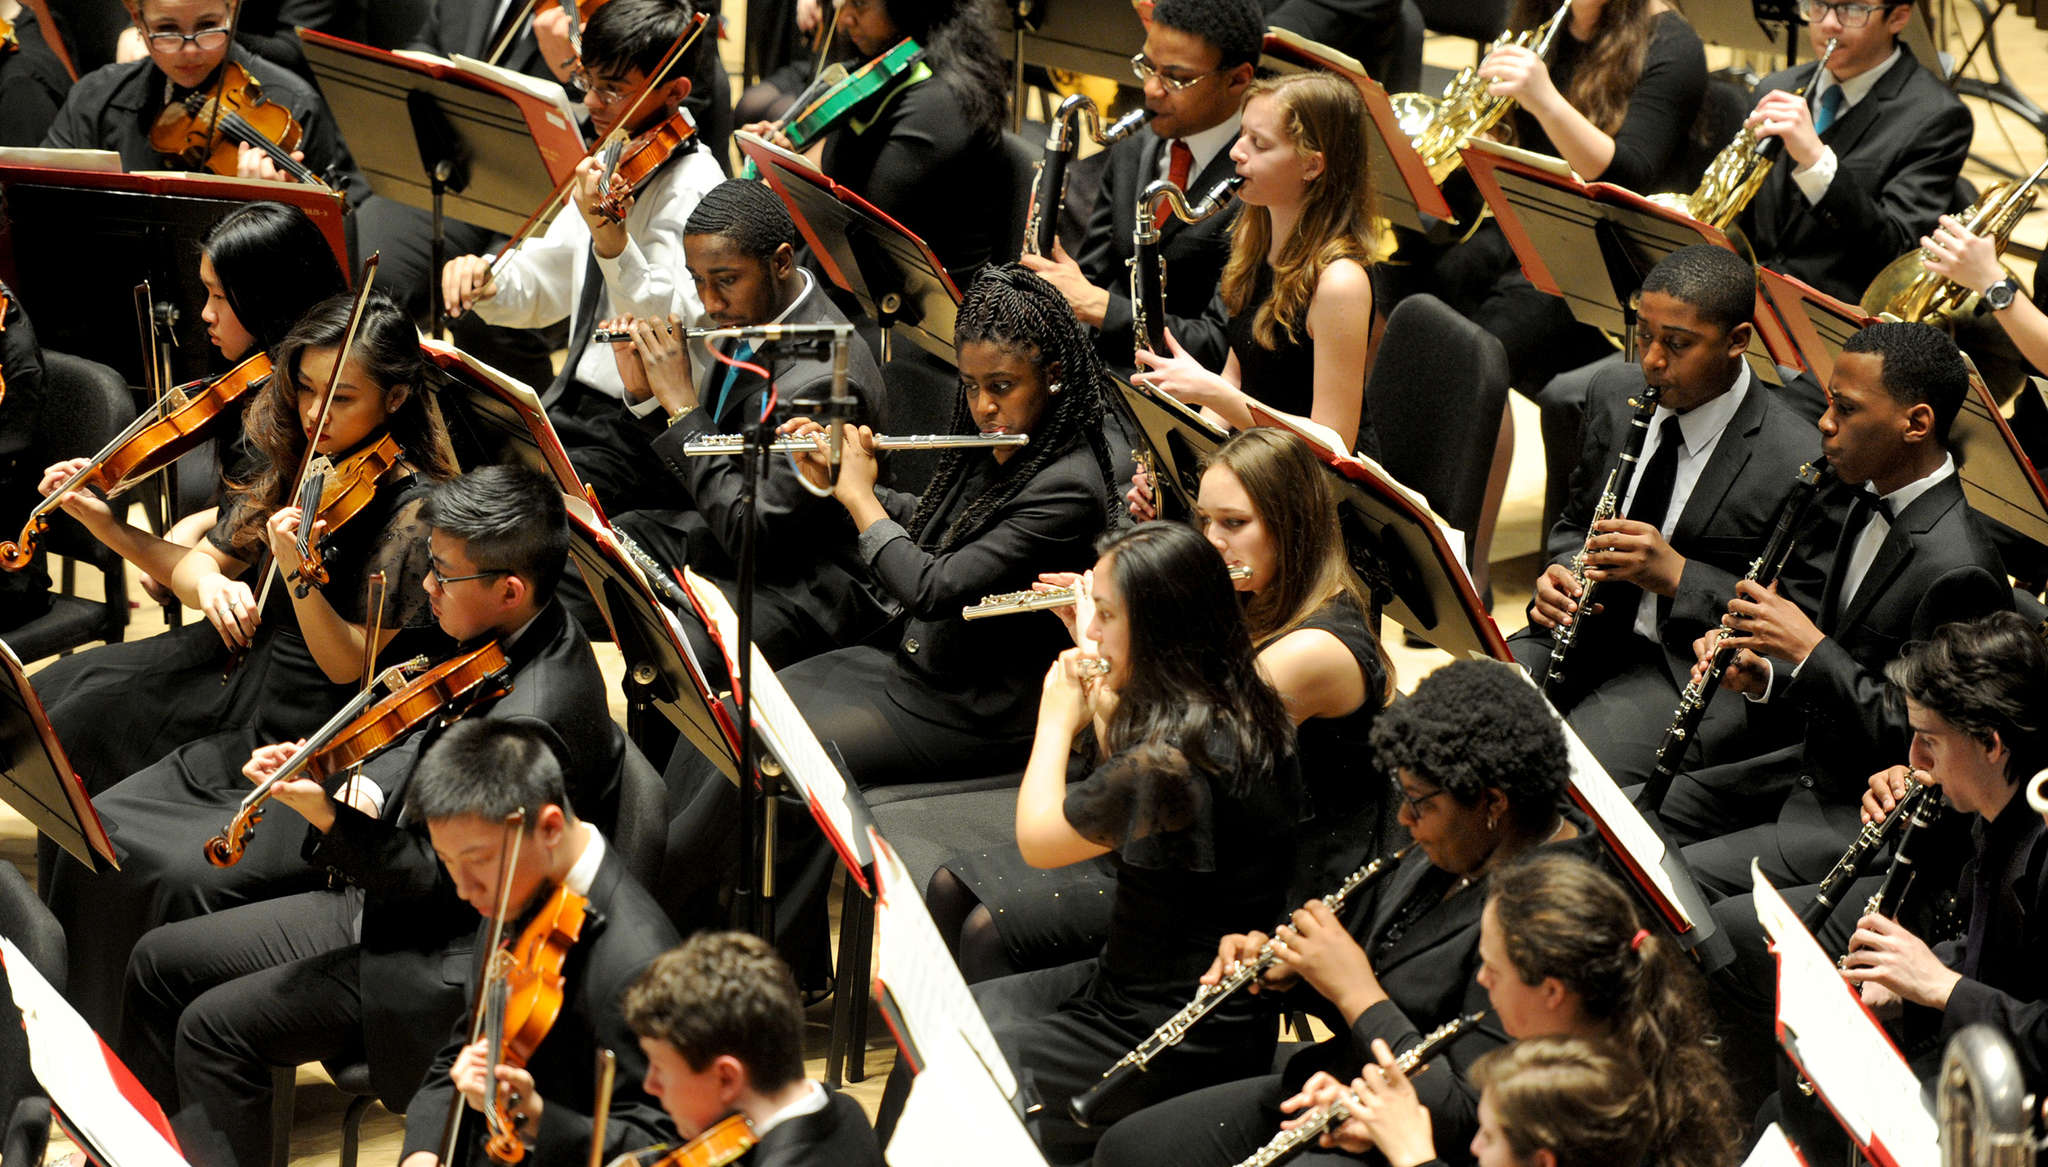 The All City Orchestra, made up of high school students, at the Kimmel Center.